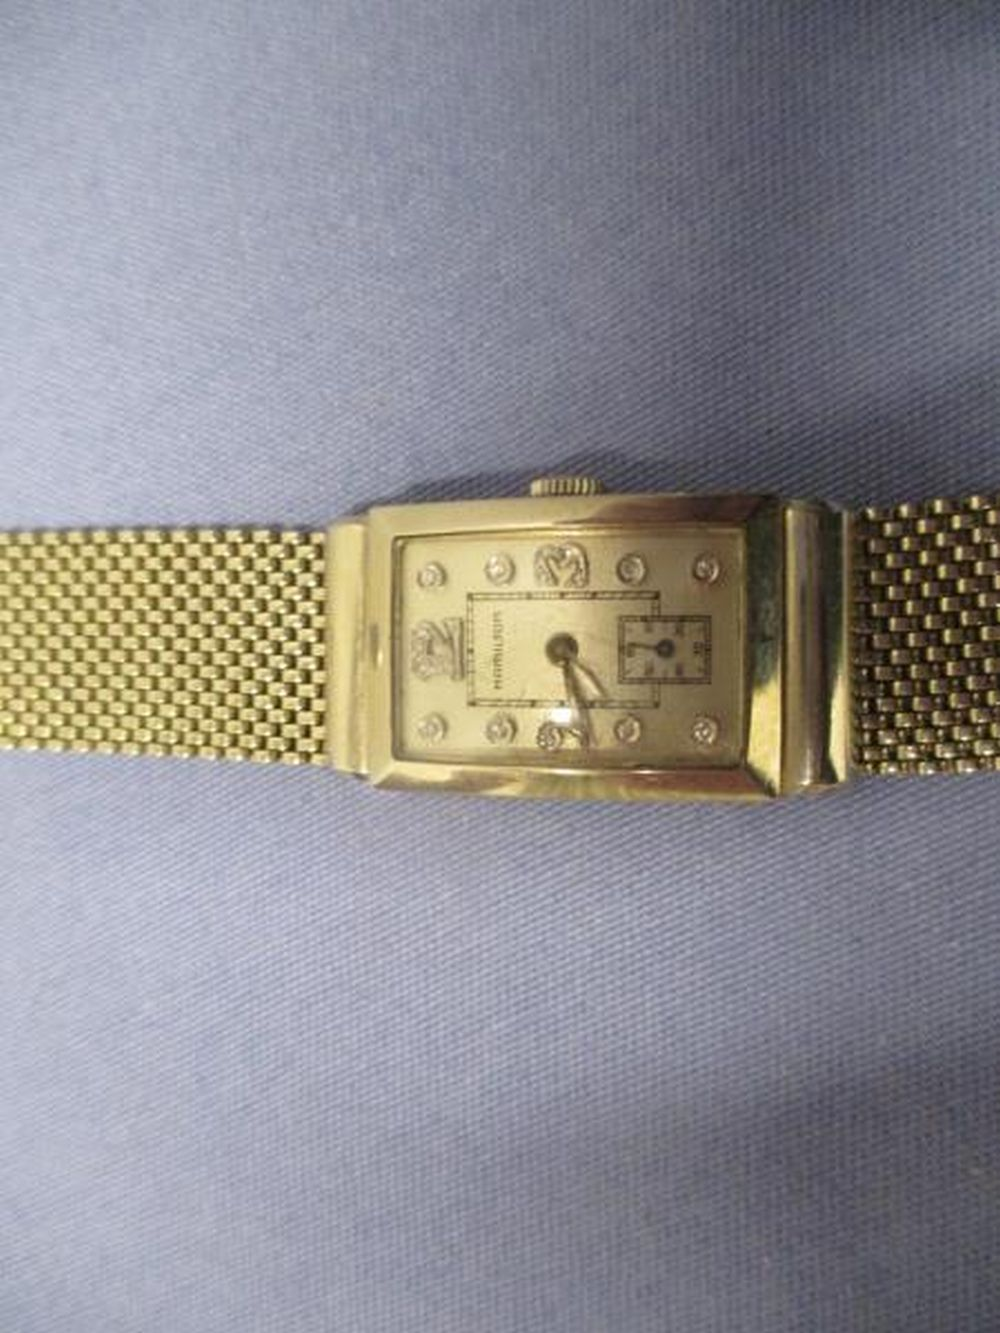 Hamilton 14K Gold Wrist Watch, 18K Woven Gold Bank 15 Full Cut Diamonds On Face, Total Weight 66.5 Grams